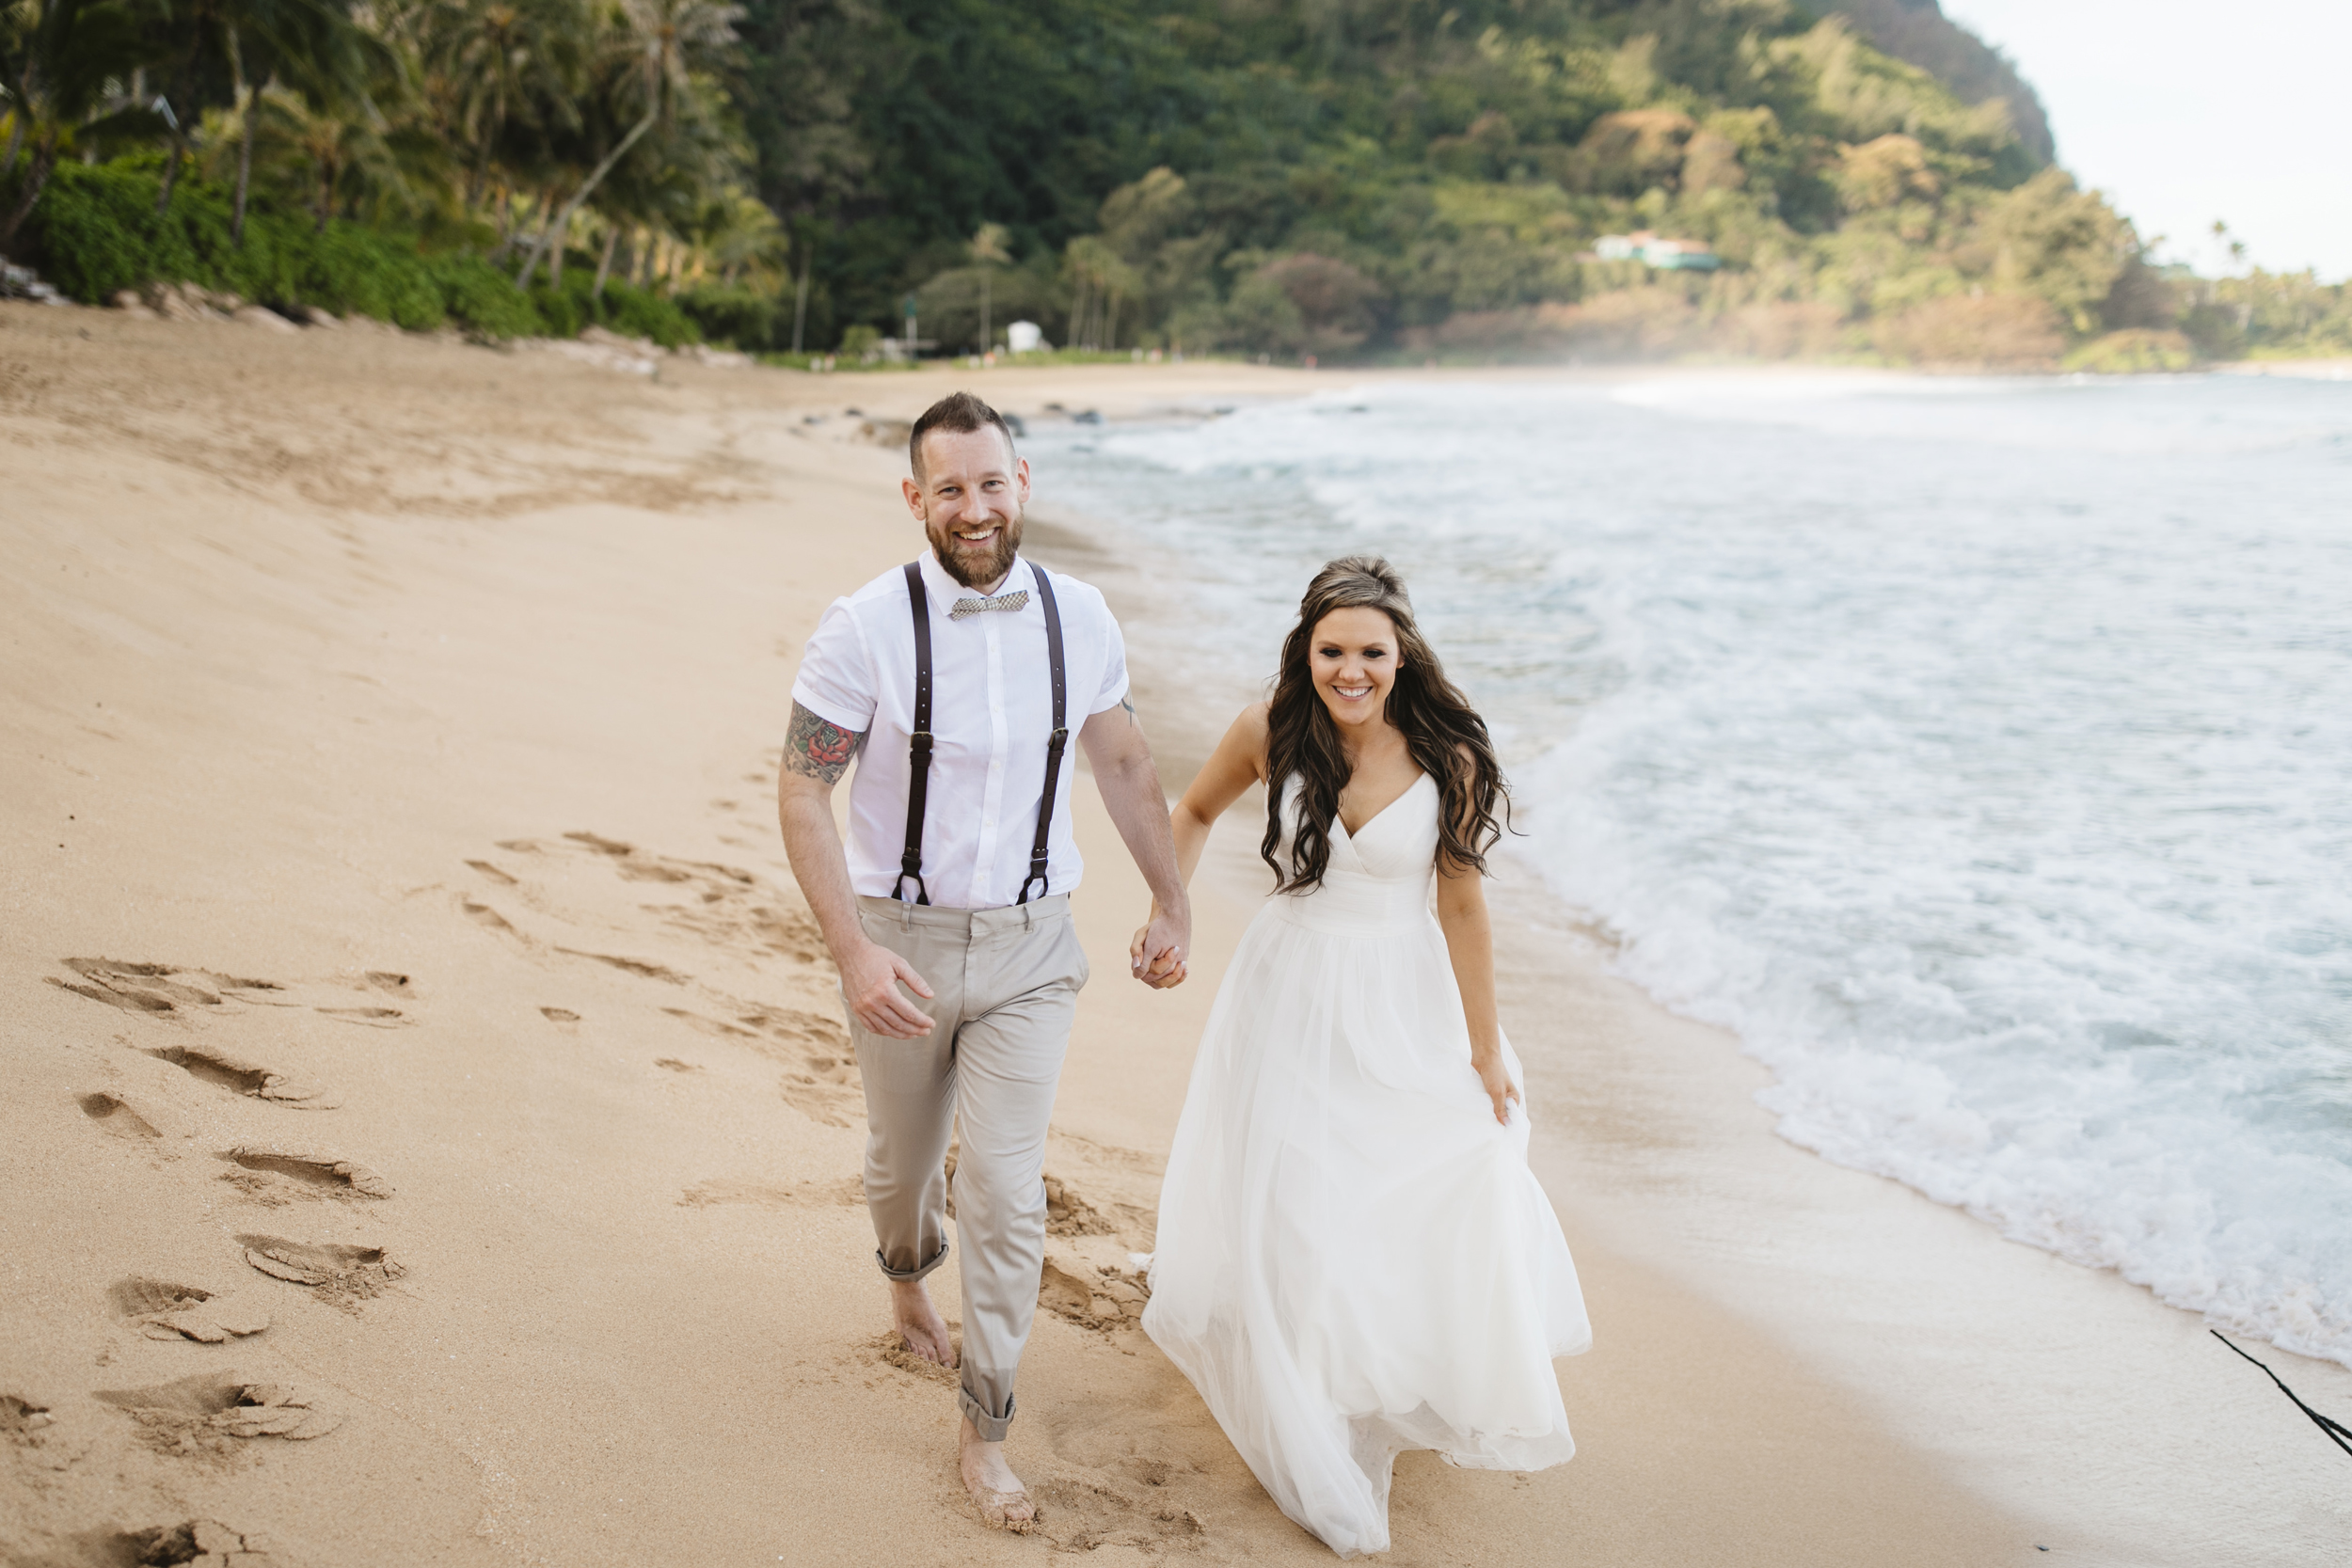 A couple runs on the beach after Tunnels Beach Elopement Ceremony by Kauai Wedding Photographers Colby and Jess